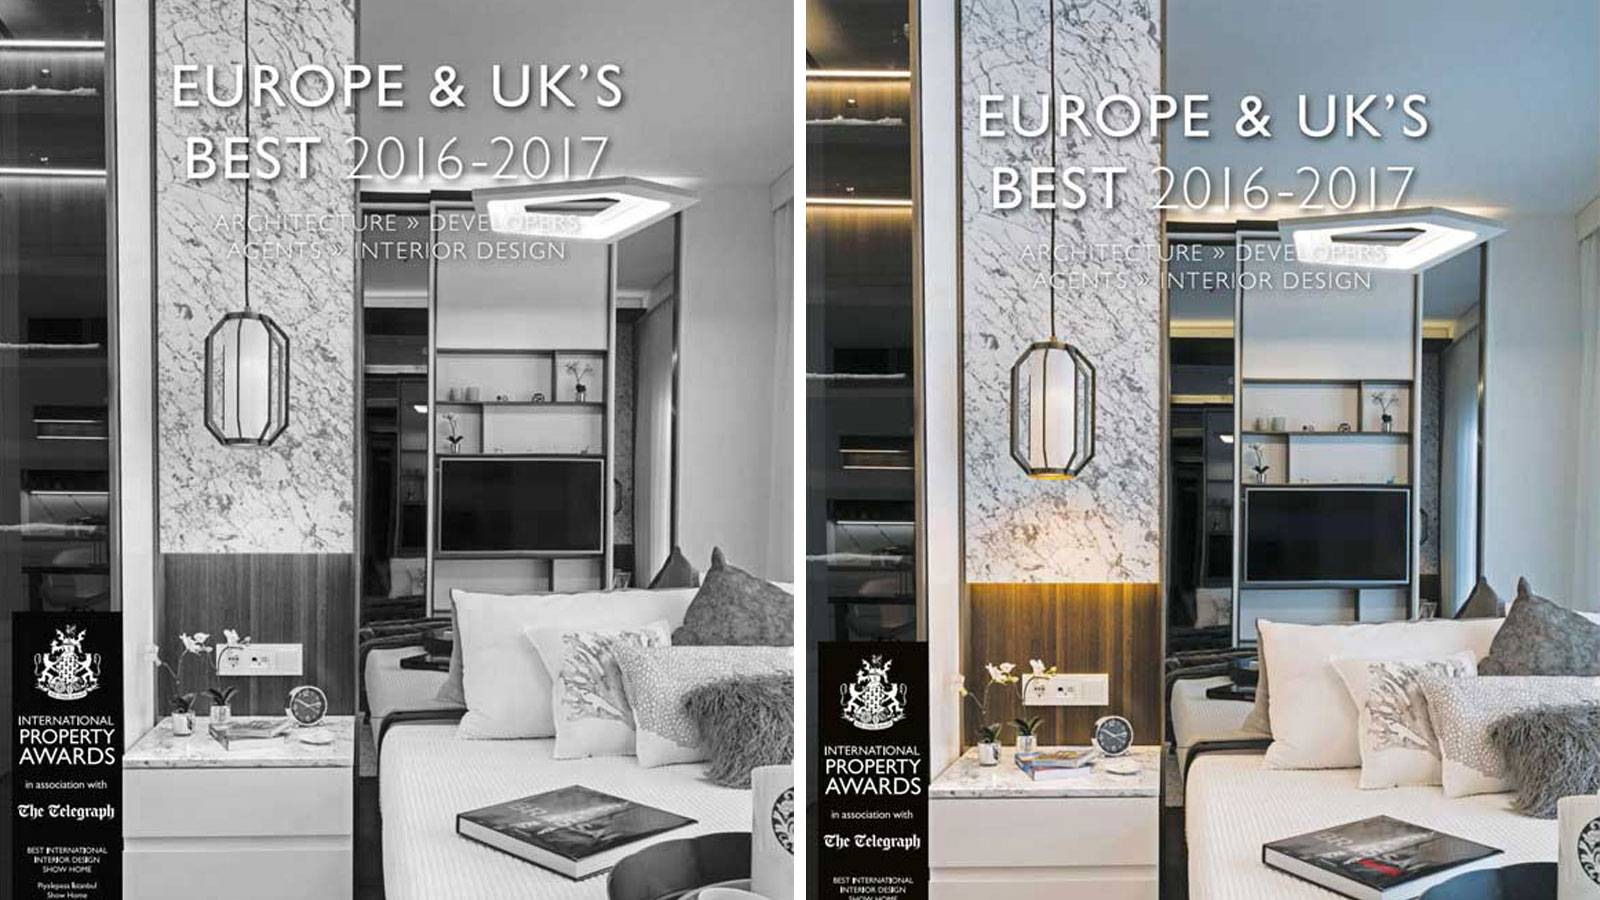 01.02.2017 Europe & UK's Best Magazine hosted us on front page.